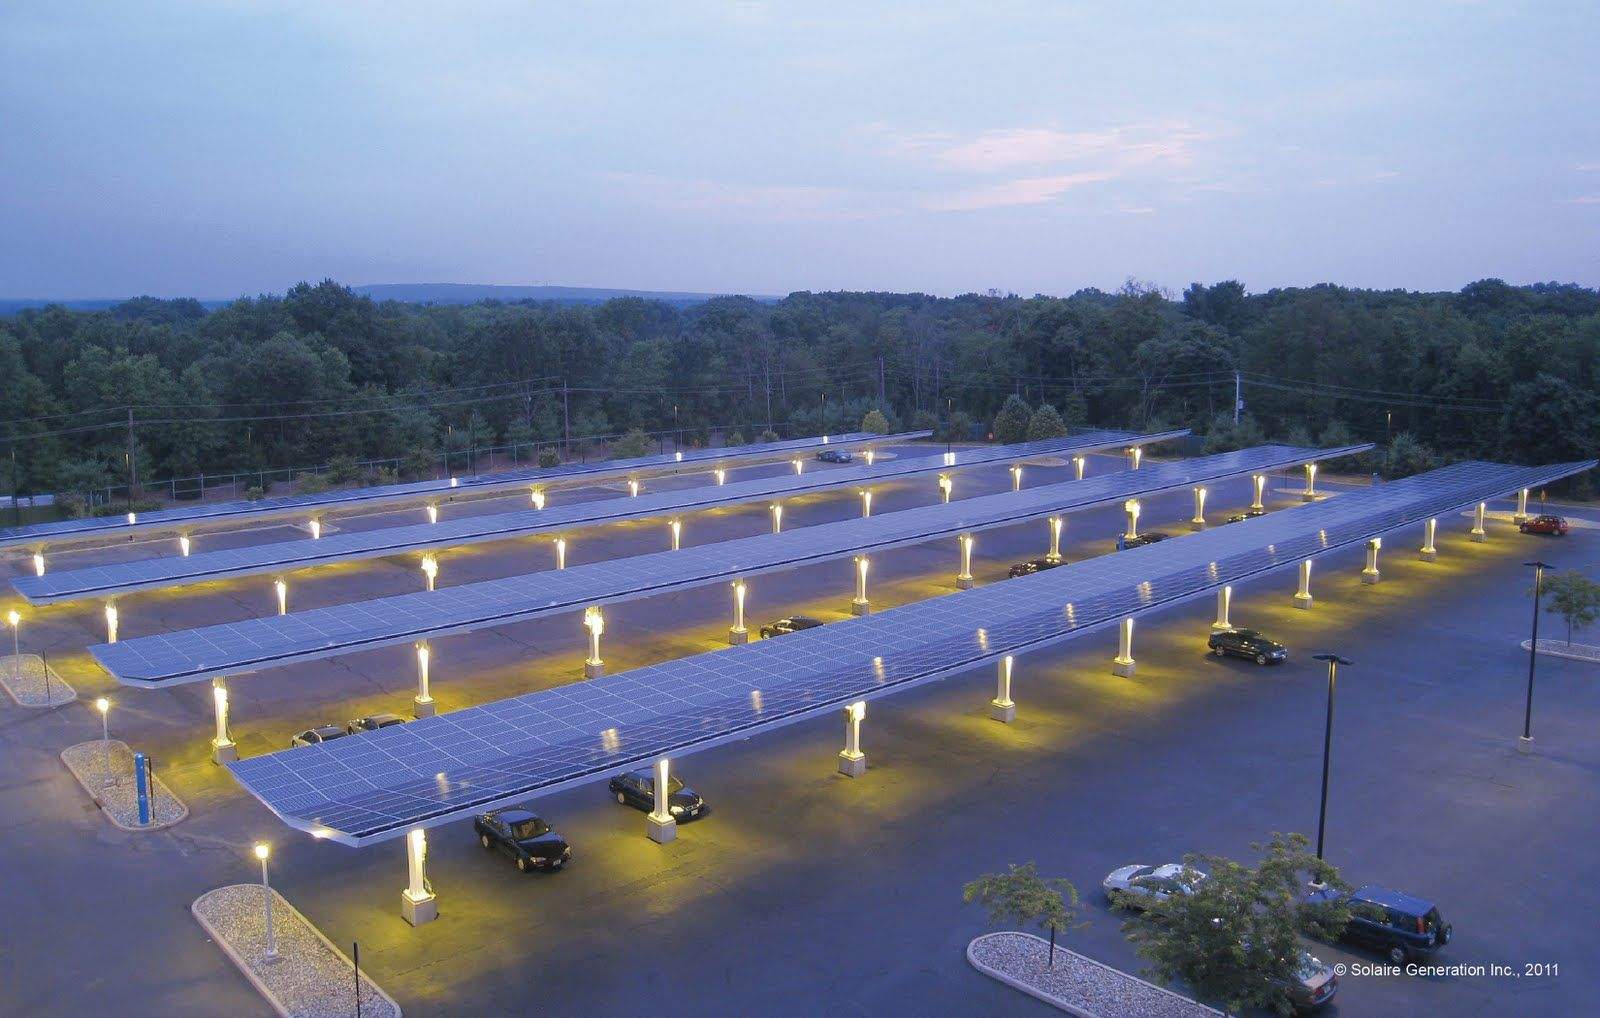 solaire's parking canopies, a cool parking lot | cool parking lots